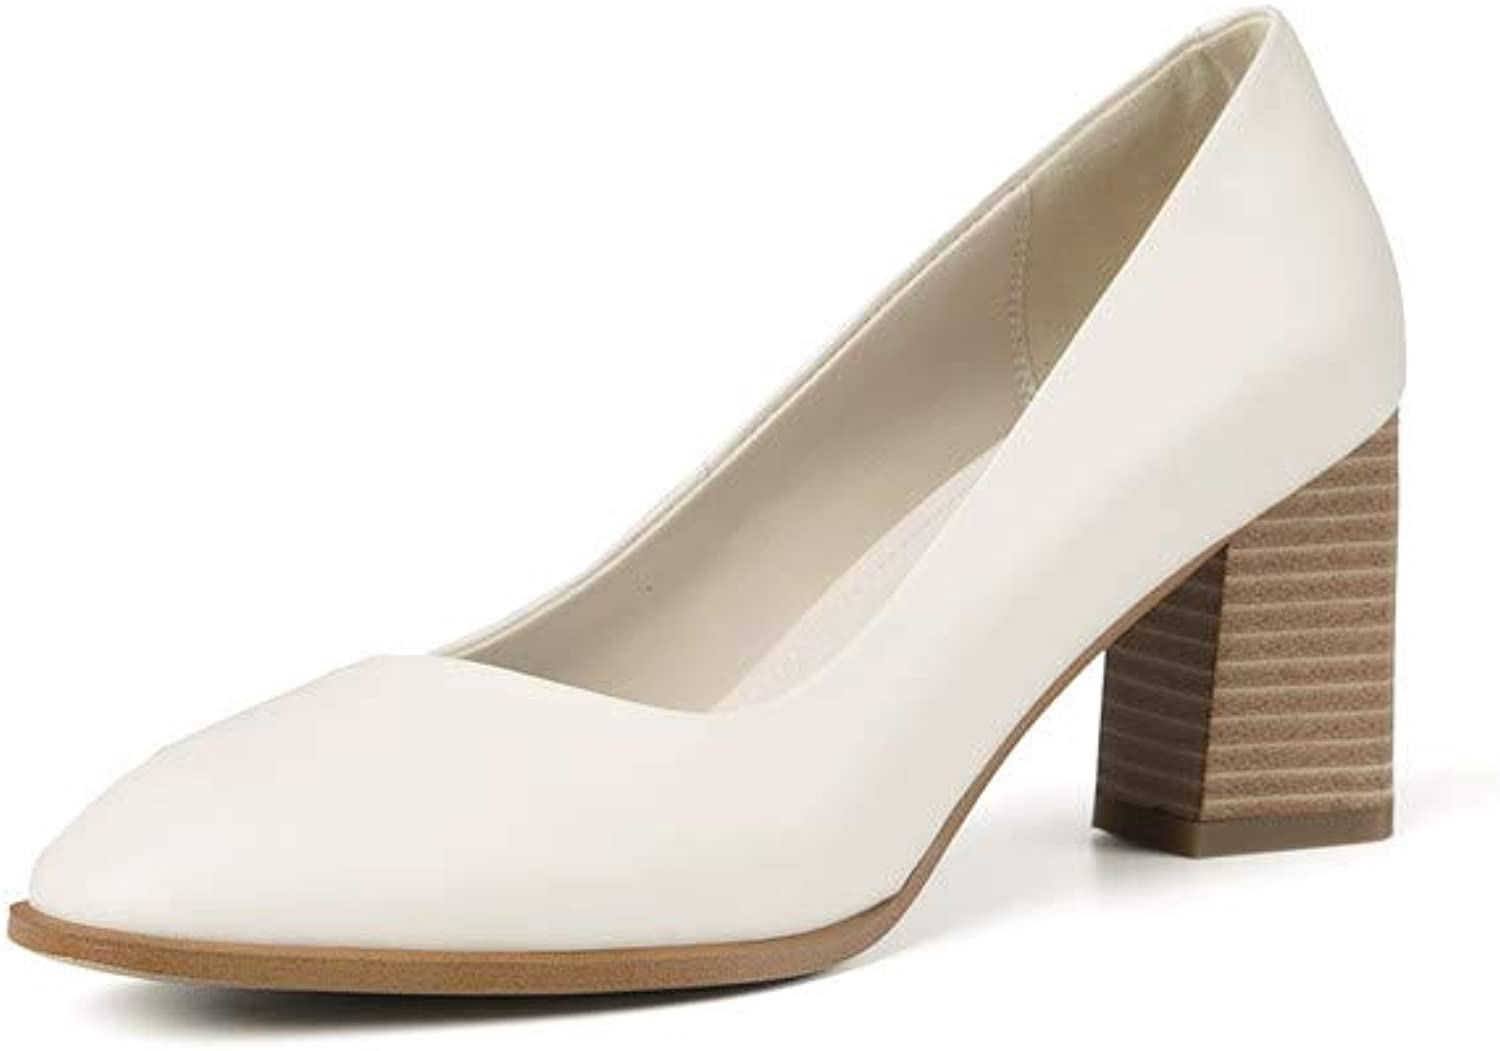 Nine Seven Women's Genuine Leather Square Toe Chunky Heel Handmade Glossy and Comfortable Spring Summer Pumps shoes (7, Beige)